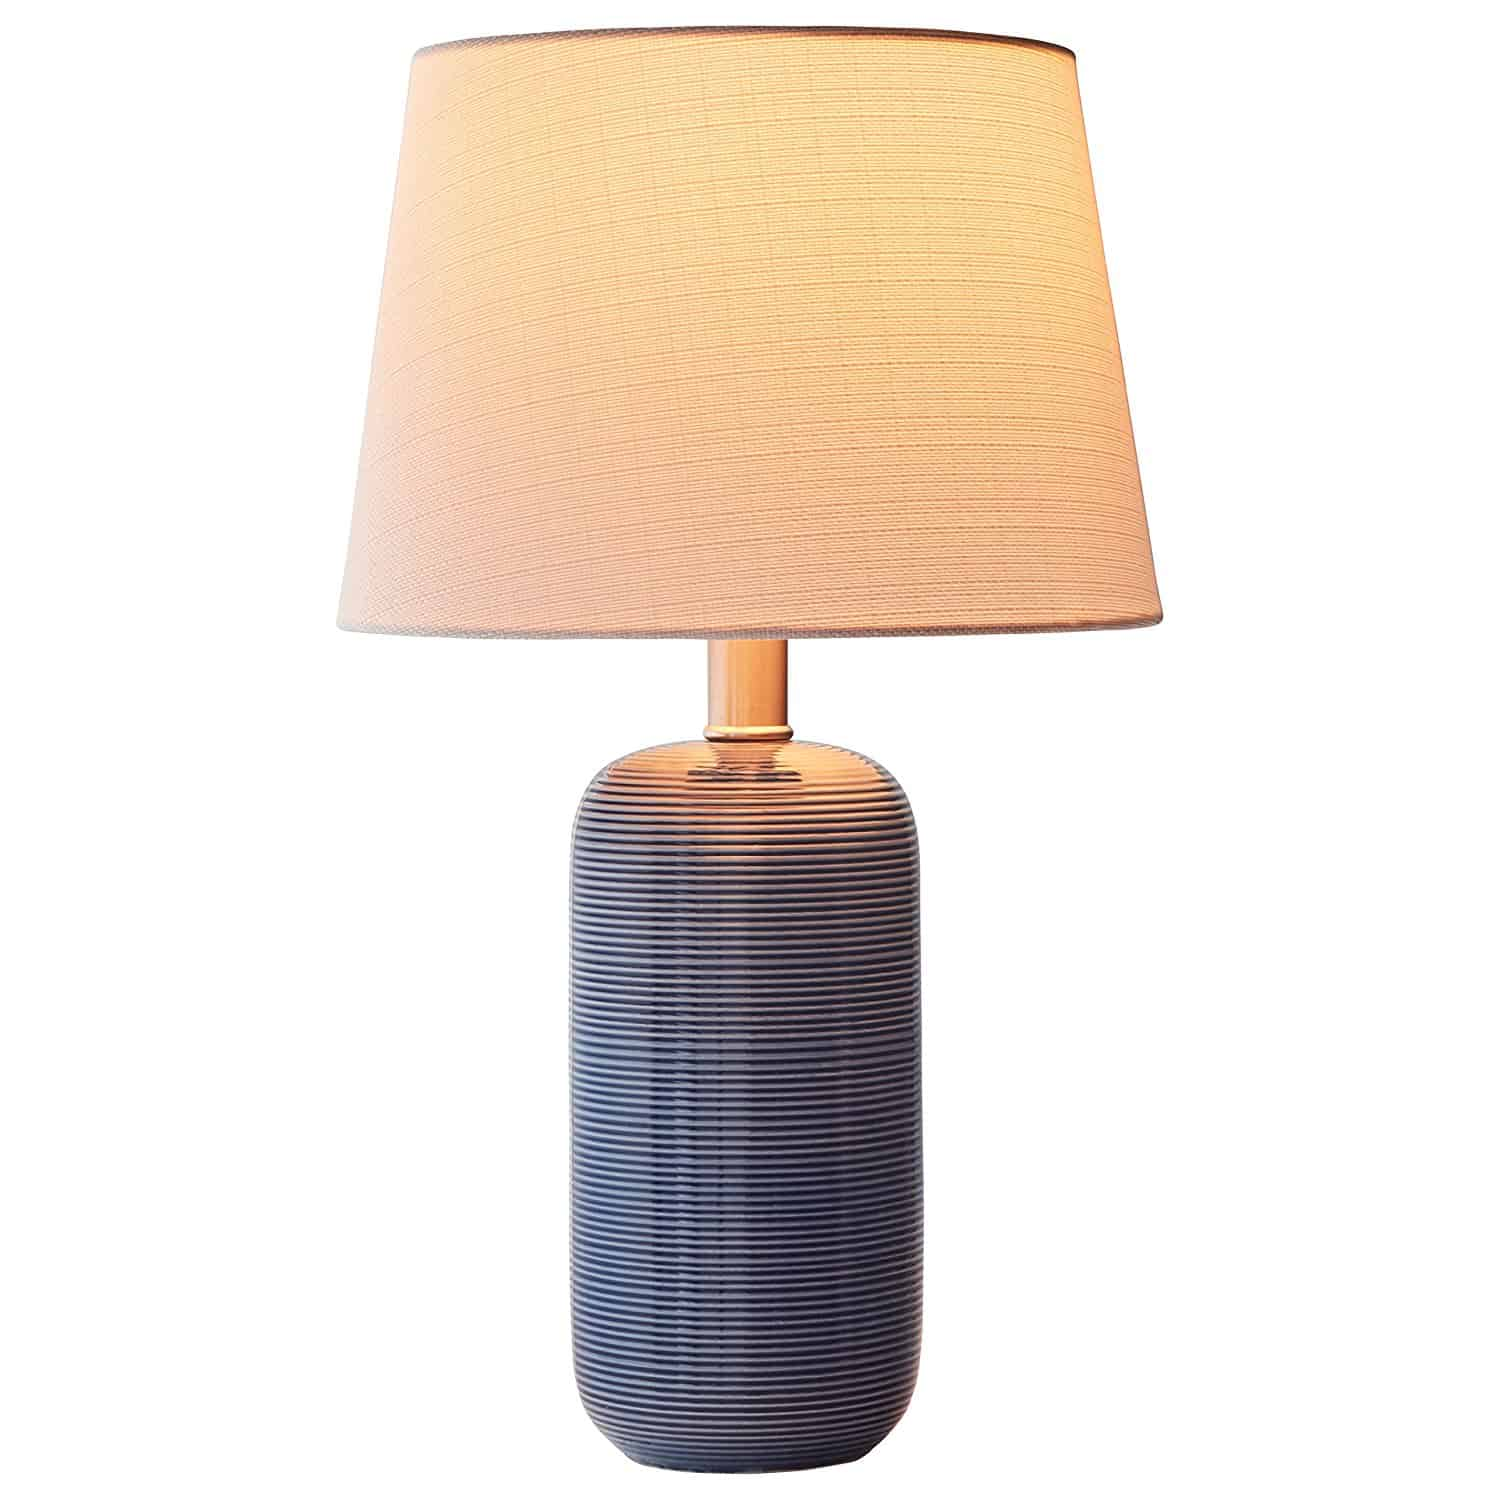 Stone & Beam Leland Modern Textured Table Lamp